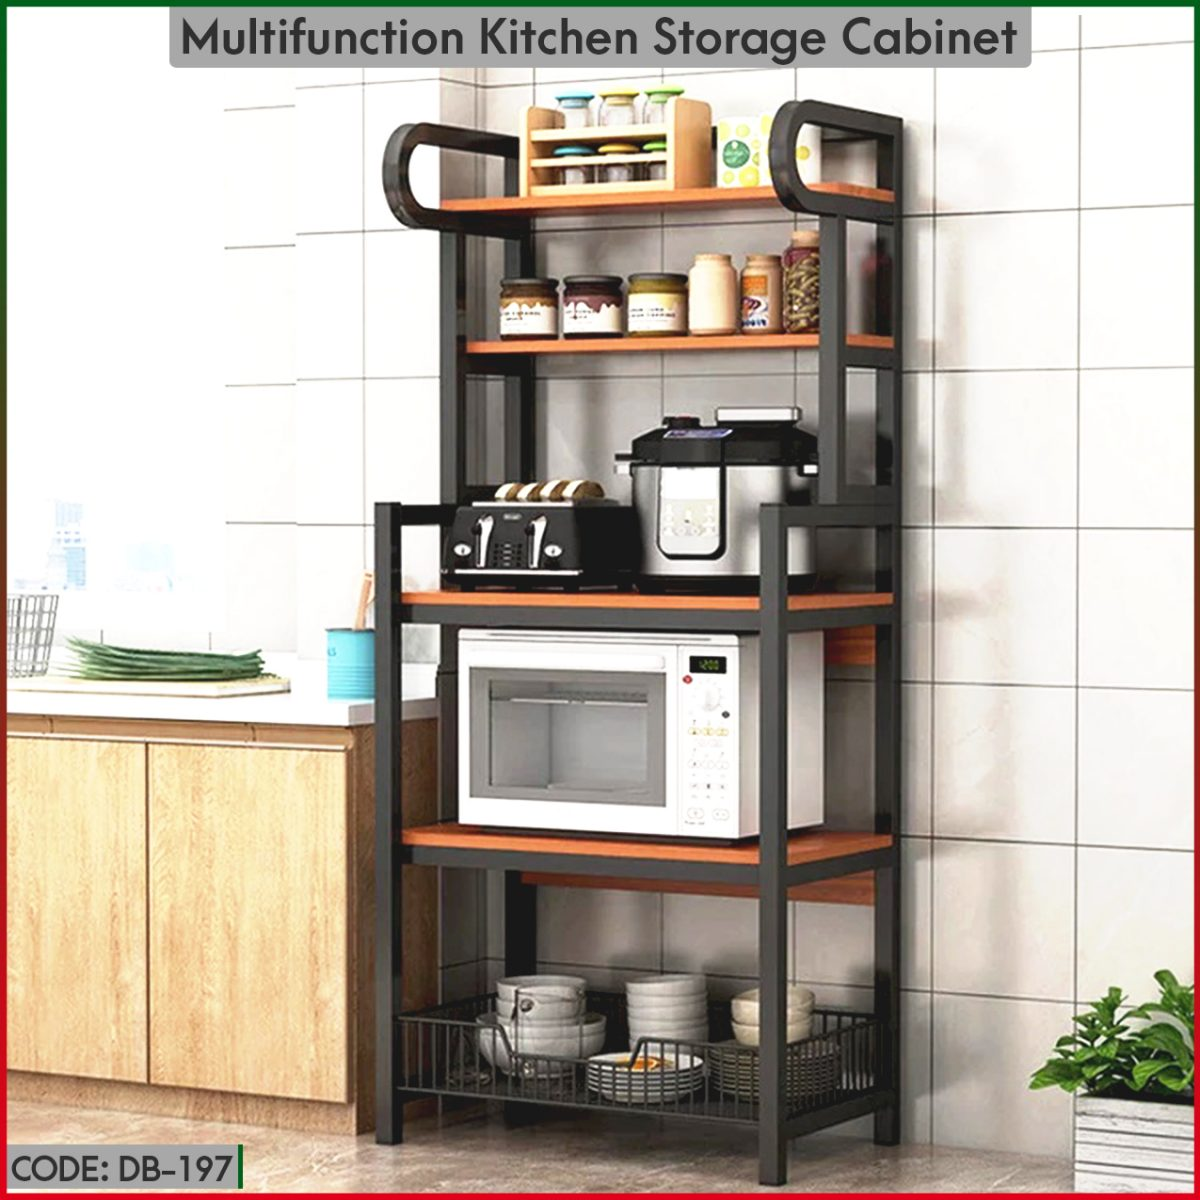 Buy premium quality Multi Storage Cabinet at the best cheapest price in Bangladesh, Order online or visit our Facebook page digitalbazar.com